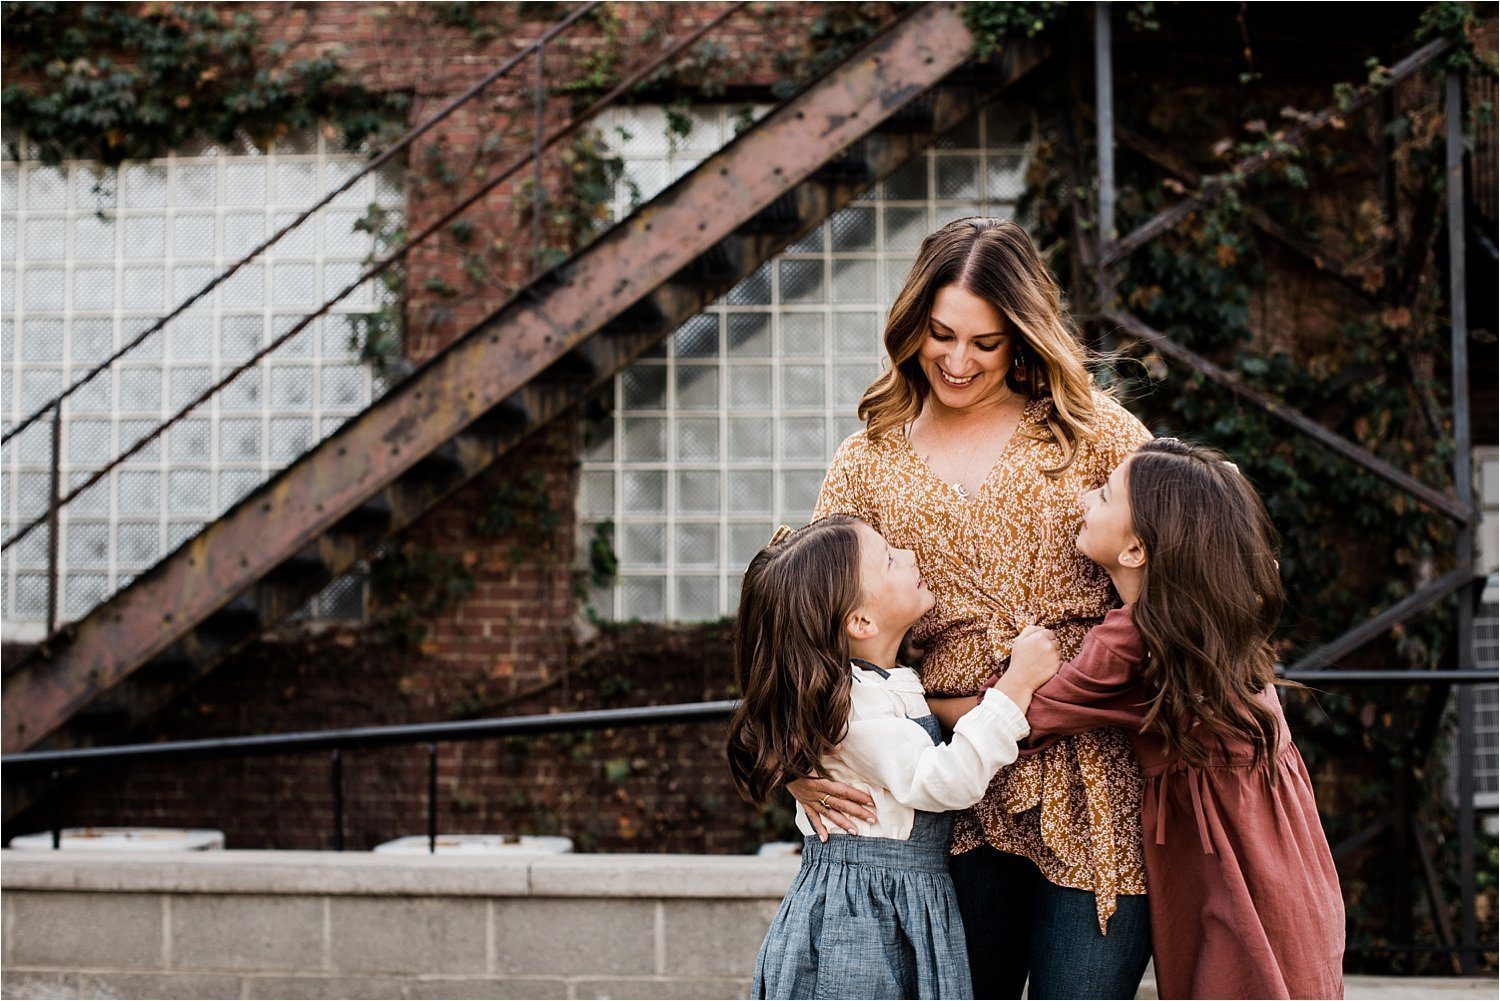 mother and daughter images in pittsburgh sewickley village